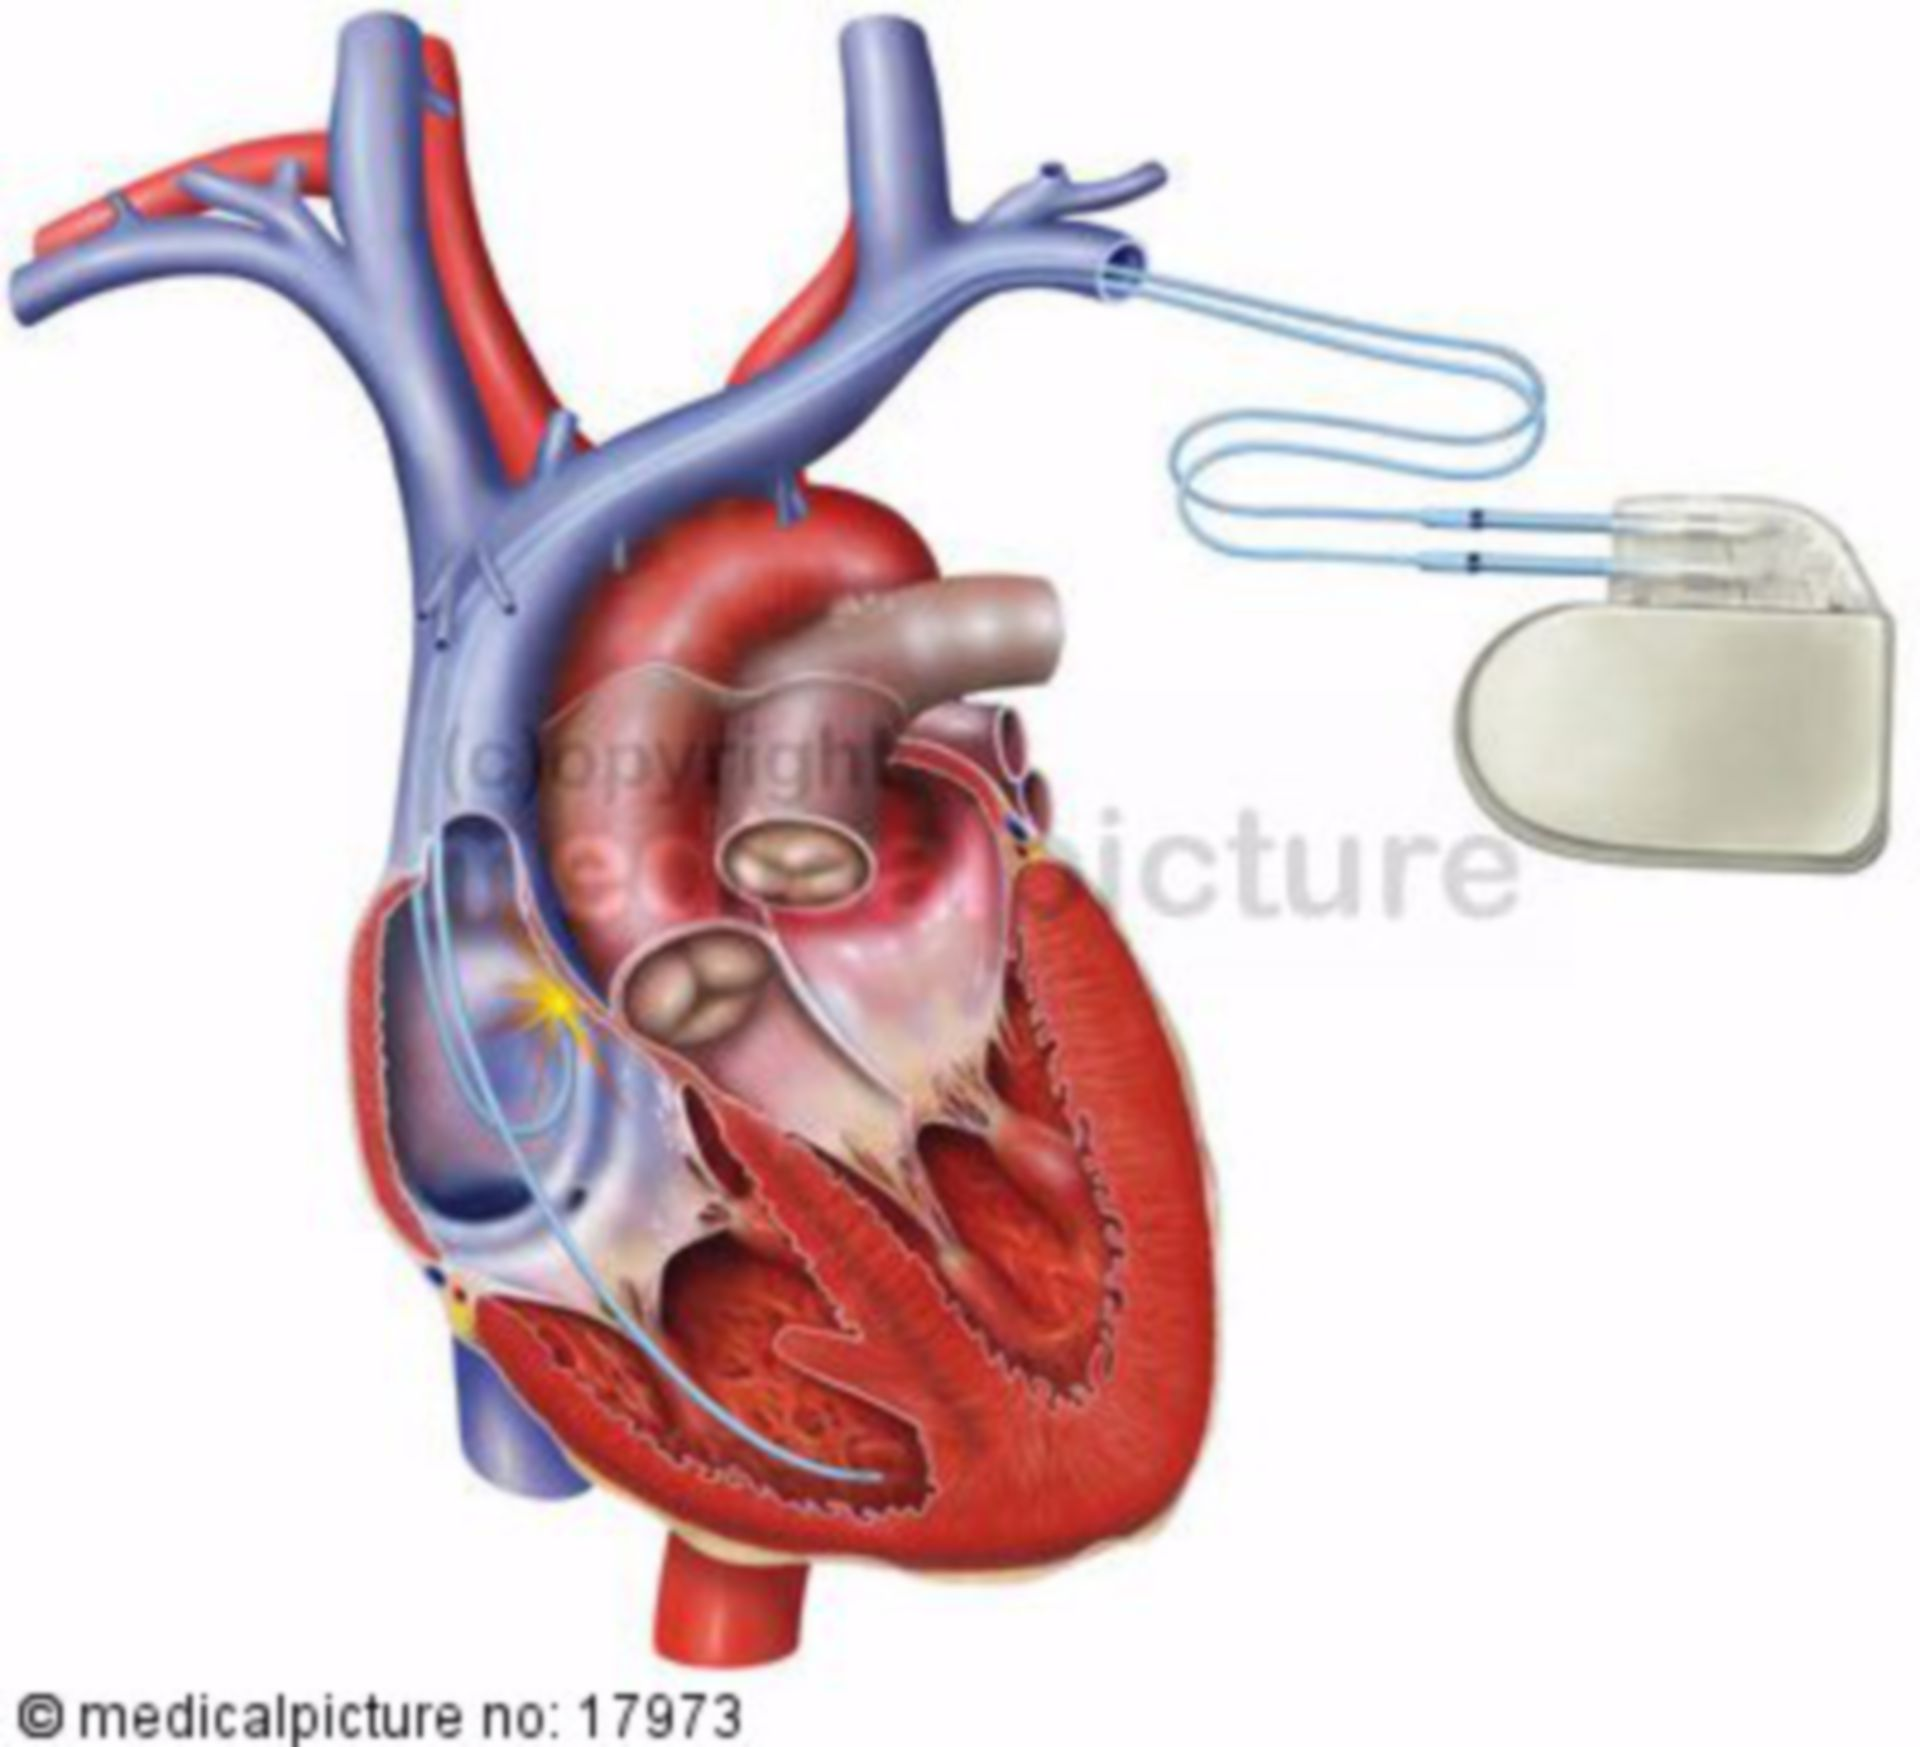 Heart with pacemaker (shock)